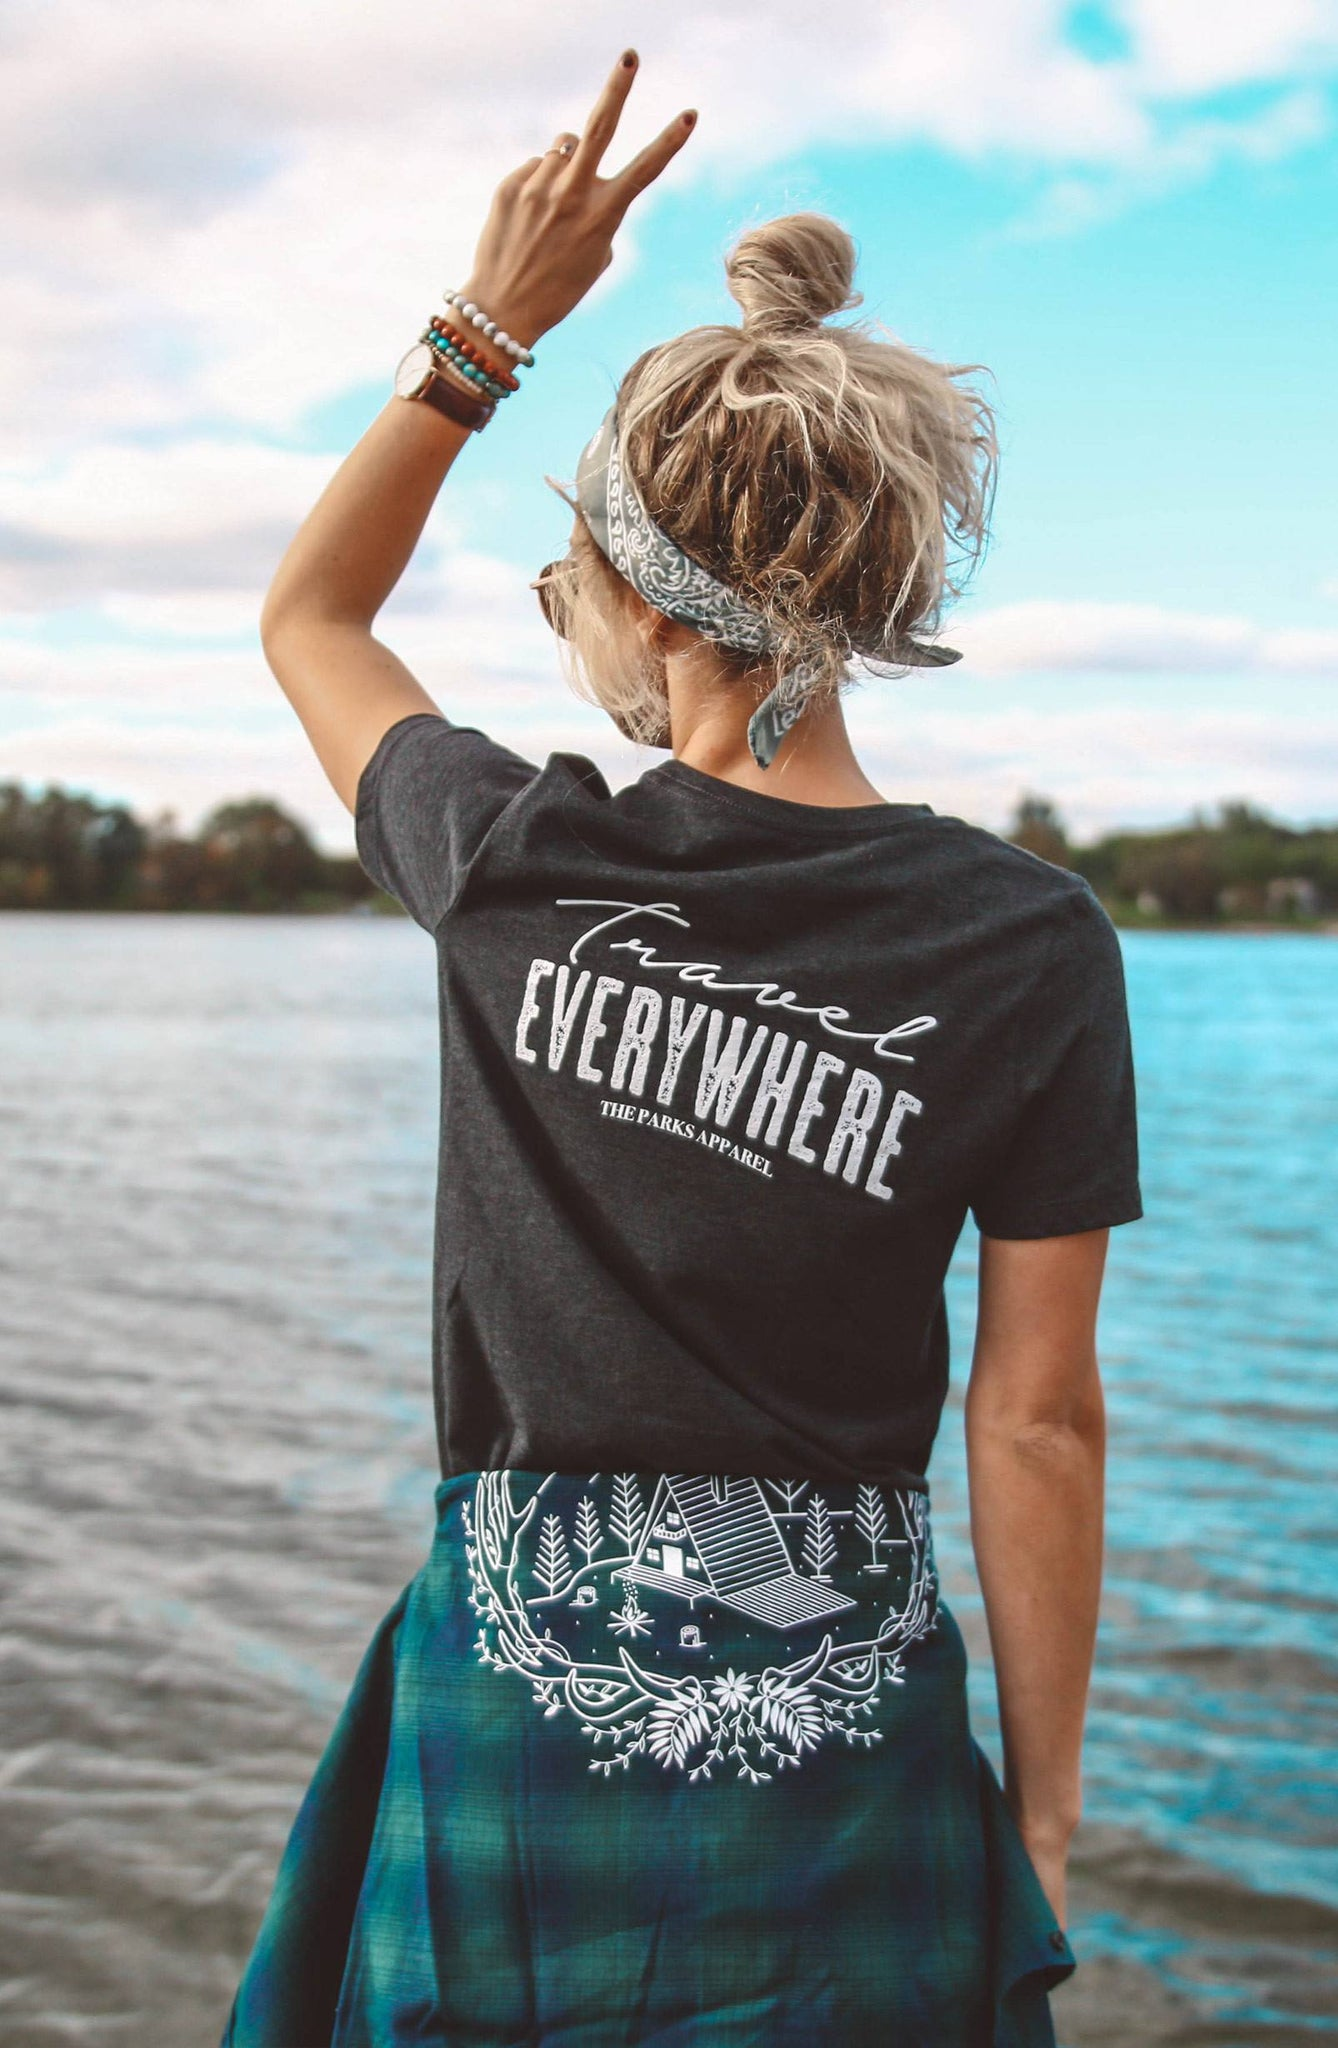 The Parks Travel Everywhere Women's Cropped Tee